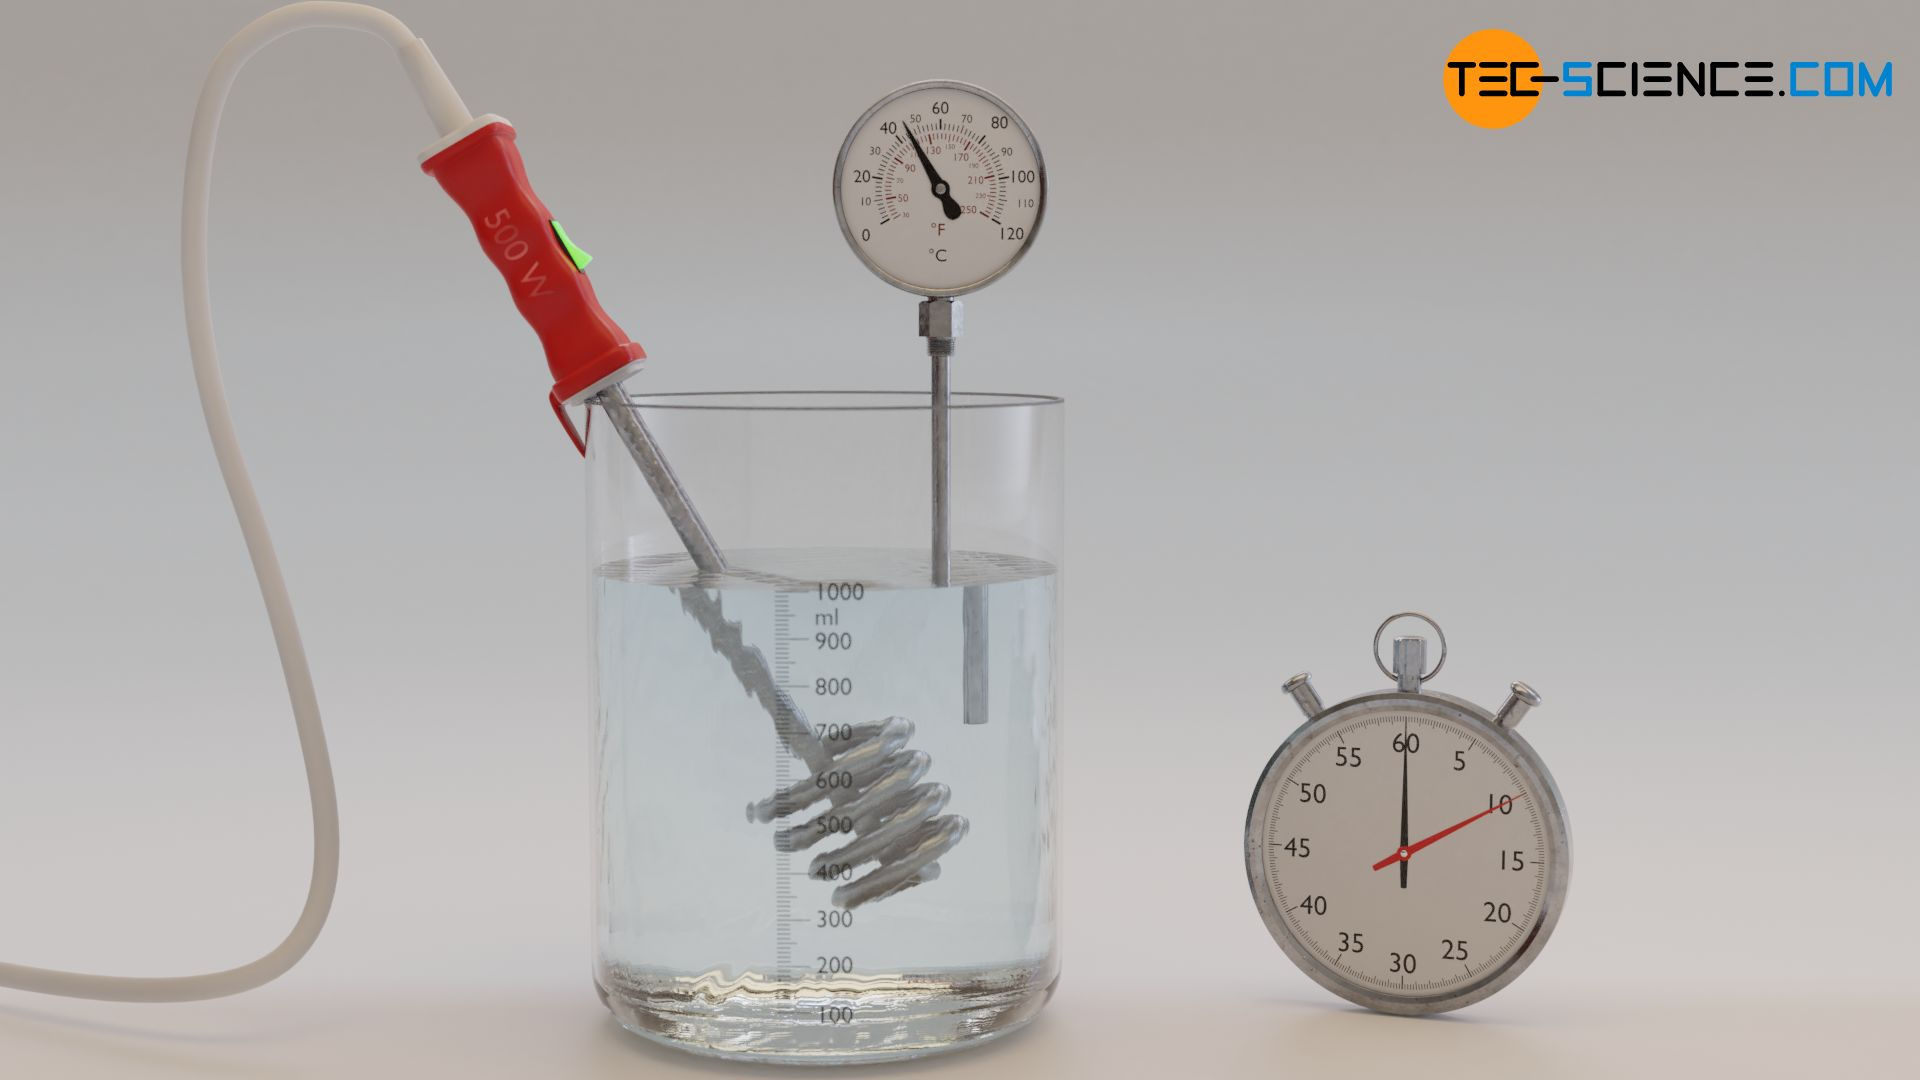 Setup for the experimental determination of the specific heat capacity of water